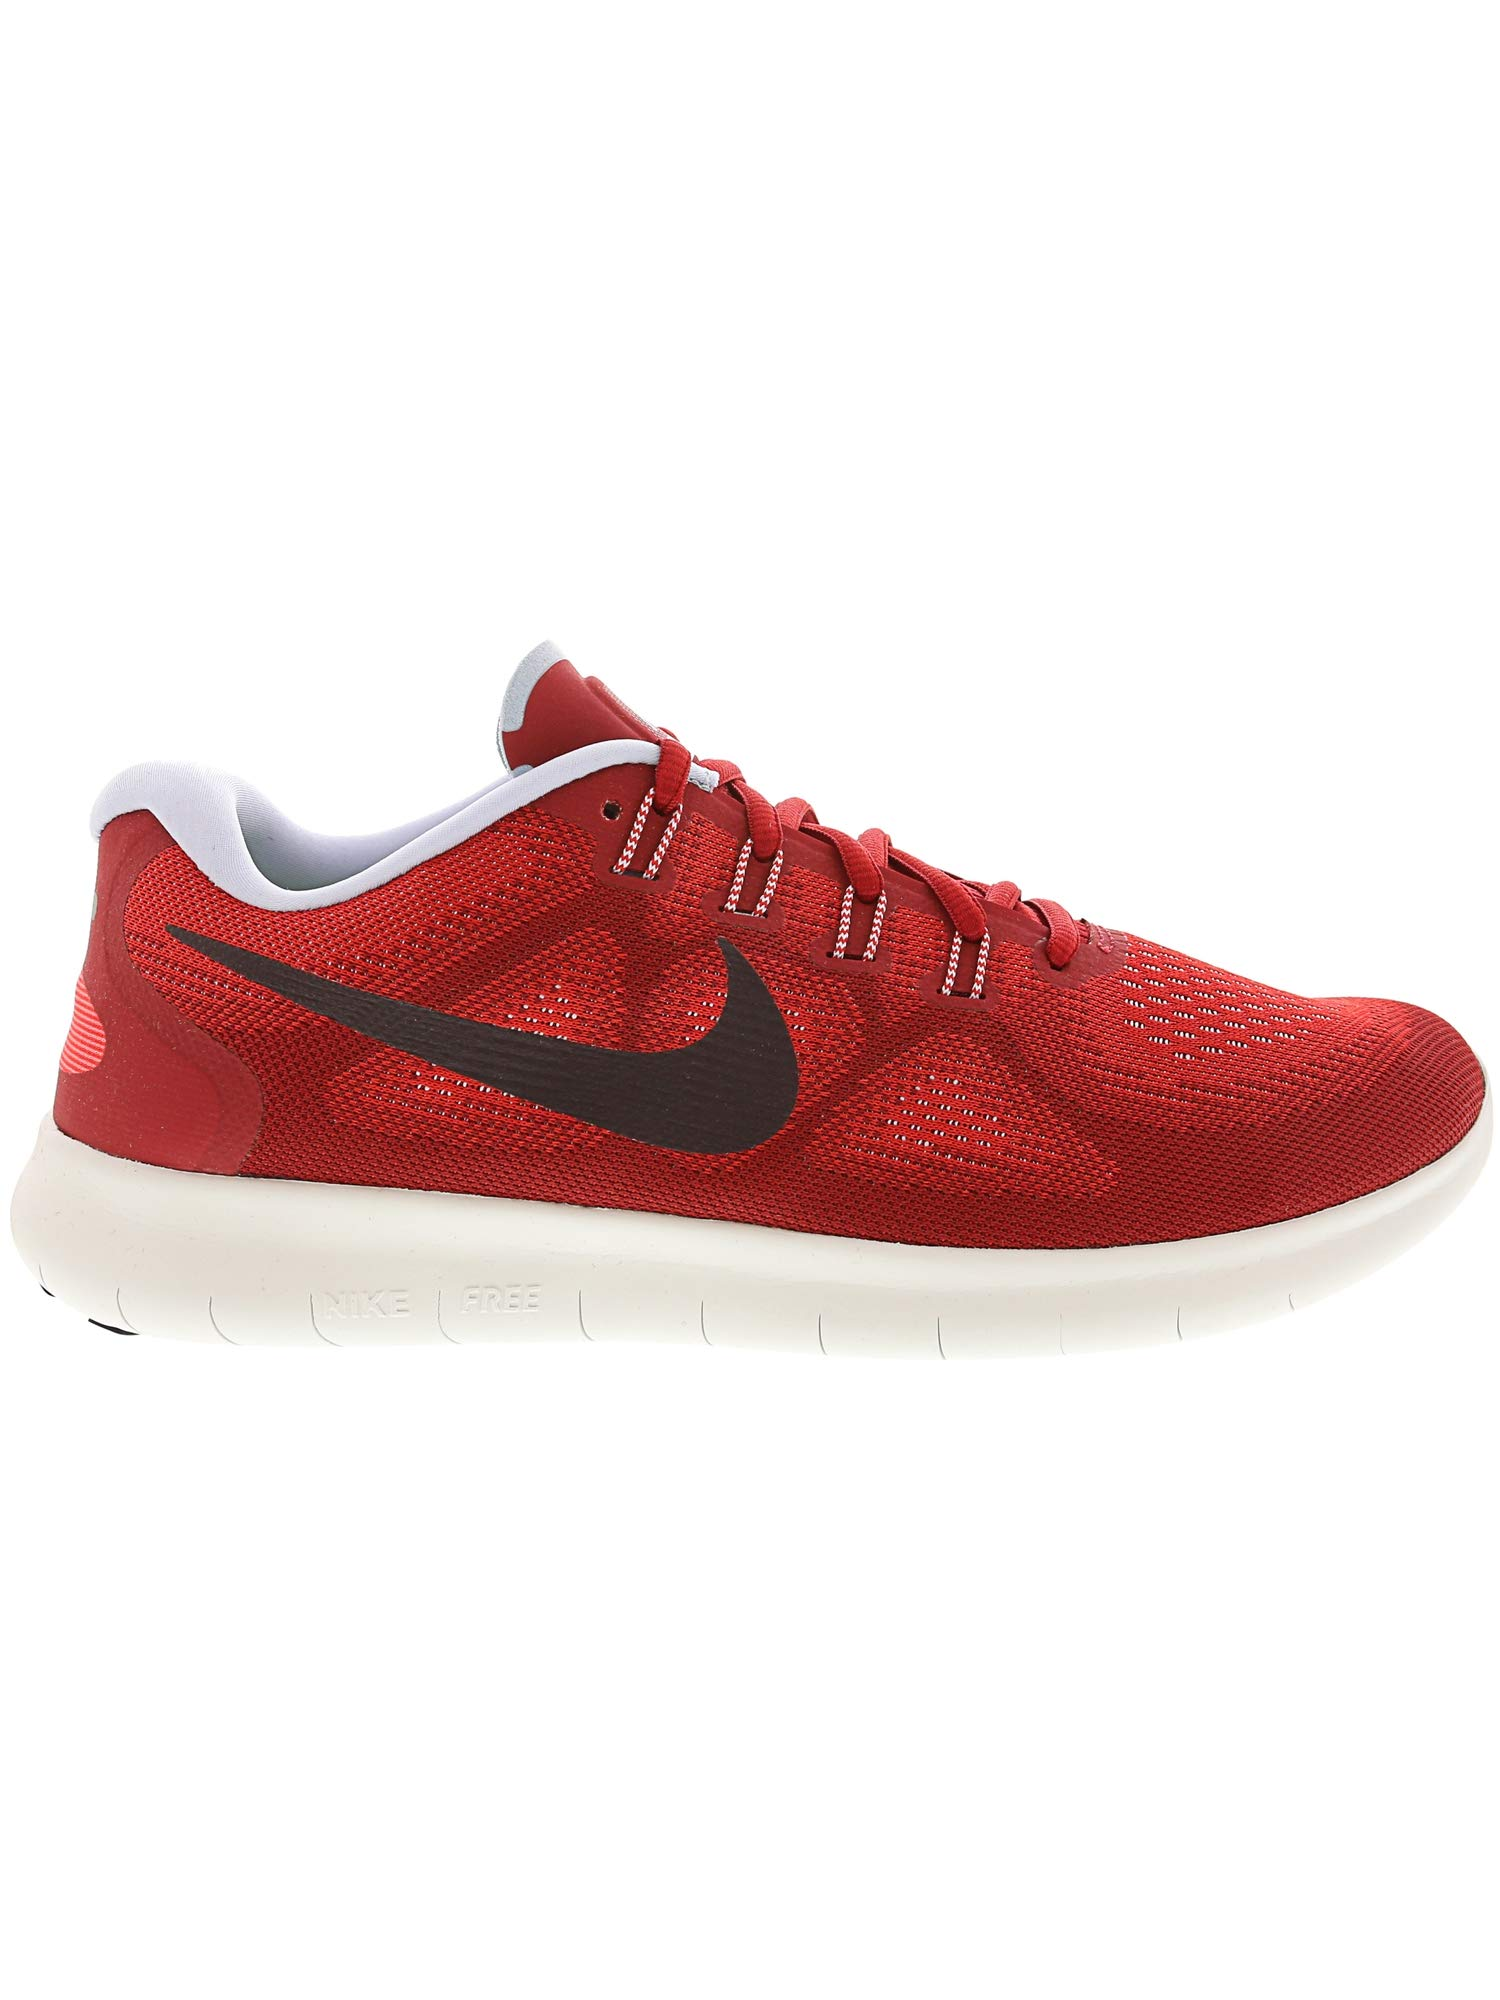 Nike Free RN 2017 Mens Running Trainers 880839 Sneakers Shoes (UK 7 US 8 EU 41, University red Port Wine 602) by Nike (Image #4)